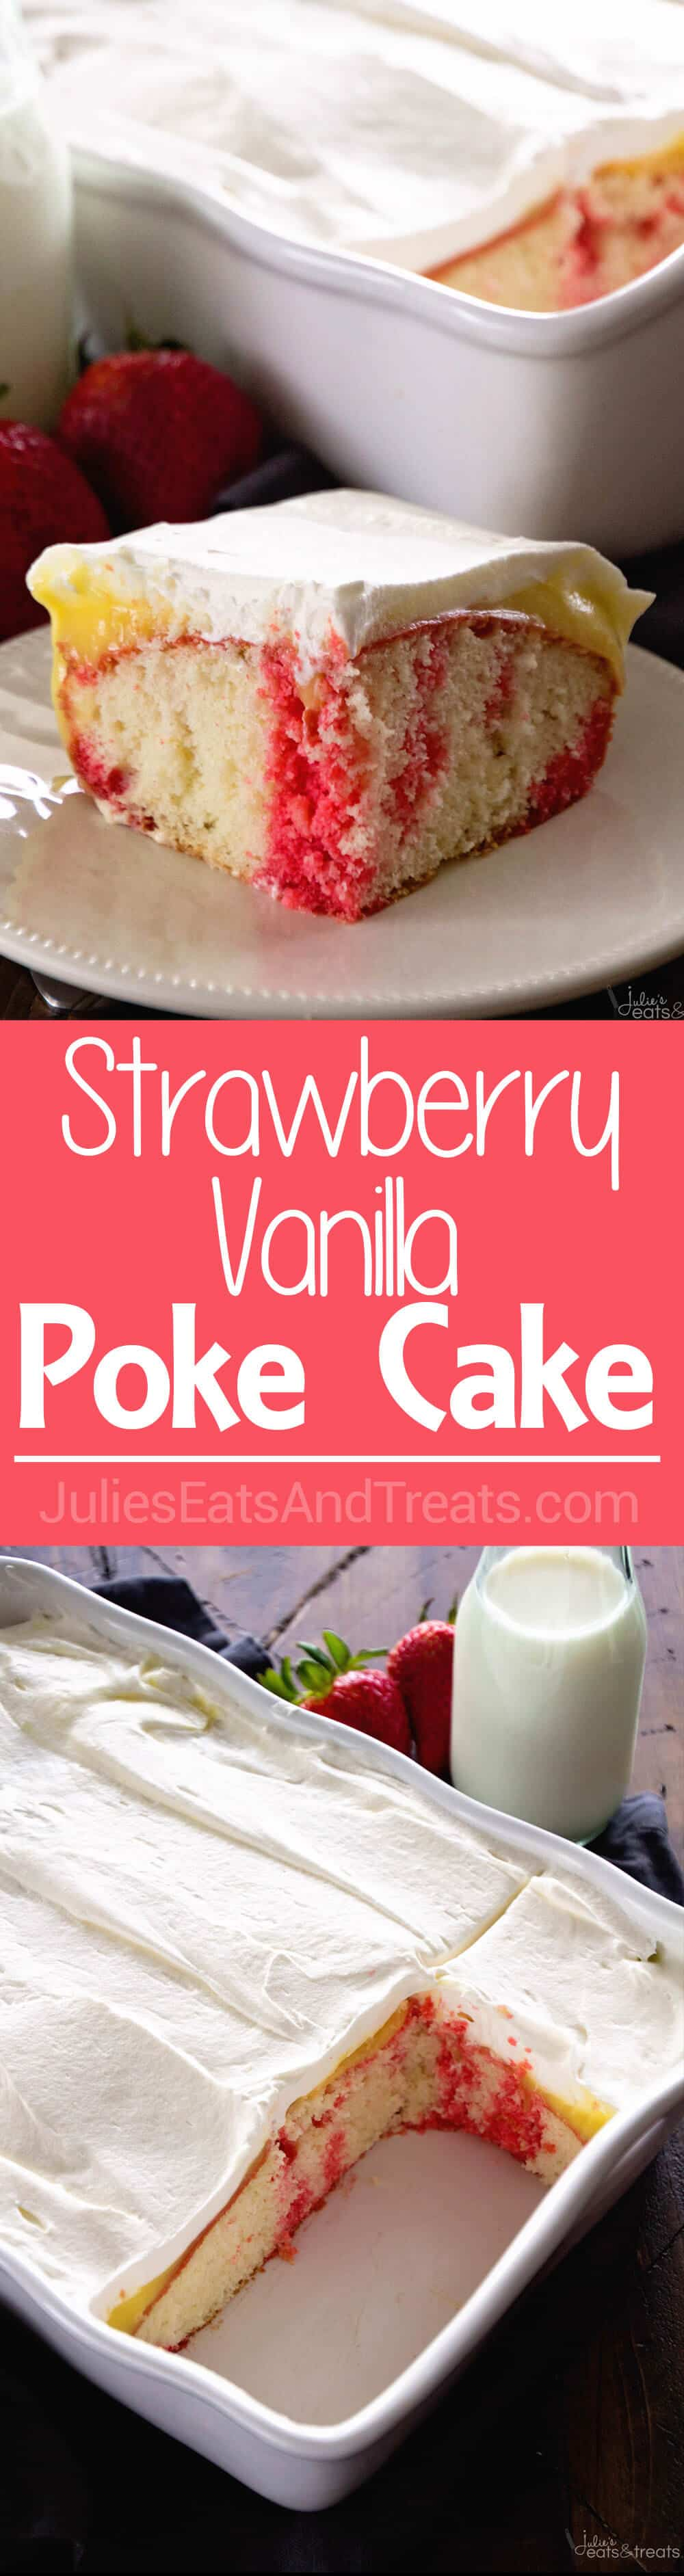 Strawberry Vanilla Poke Cake ~ Quick & Easy, But Impressive for Guests! This Light Cake Starts with a Box Mix and is Topped with Strawberry Jell-O, Vanilla Pudding and Cool Whip! Perfect Comfort Food Dessert!